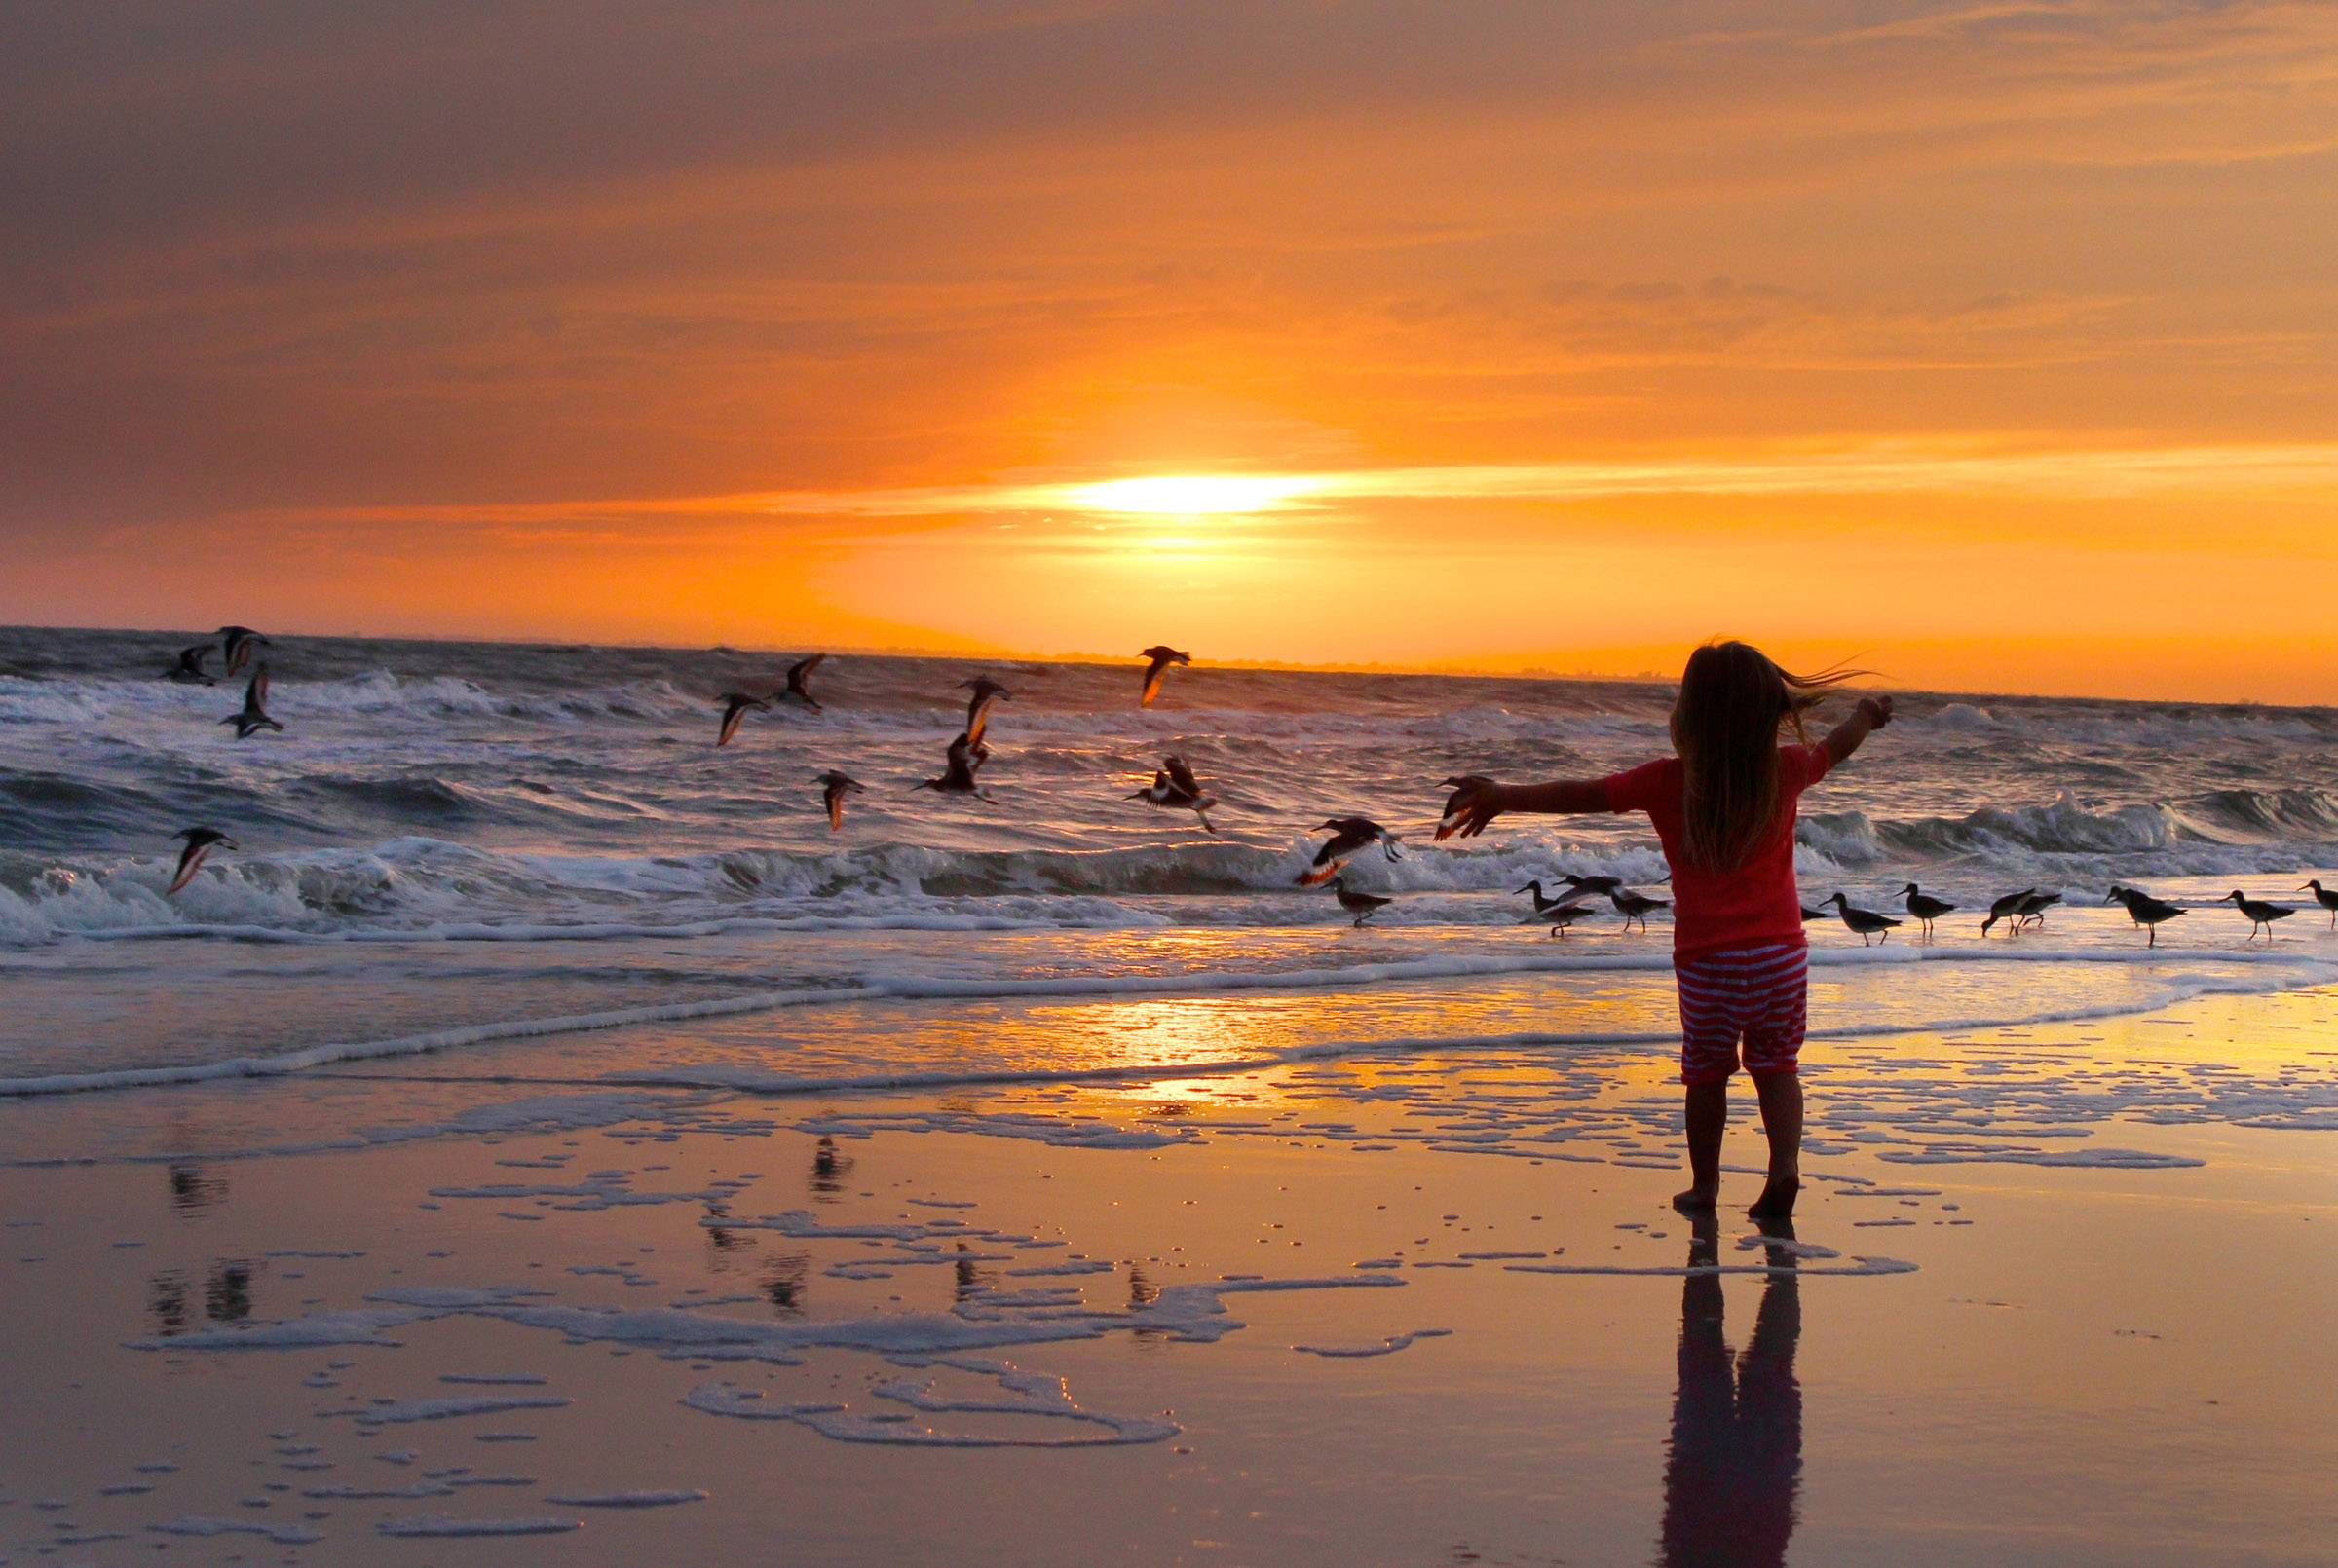 A young girl plays with birds along Ft. Myers Beach at sunset in Florida last March.